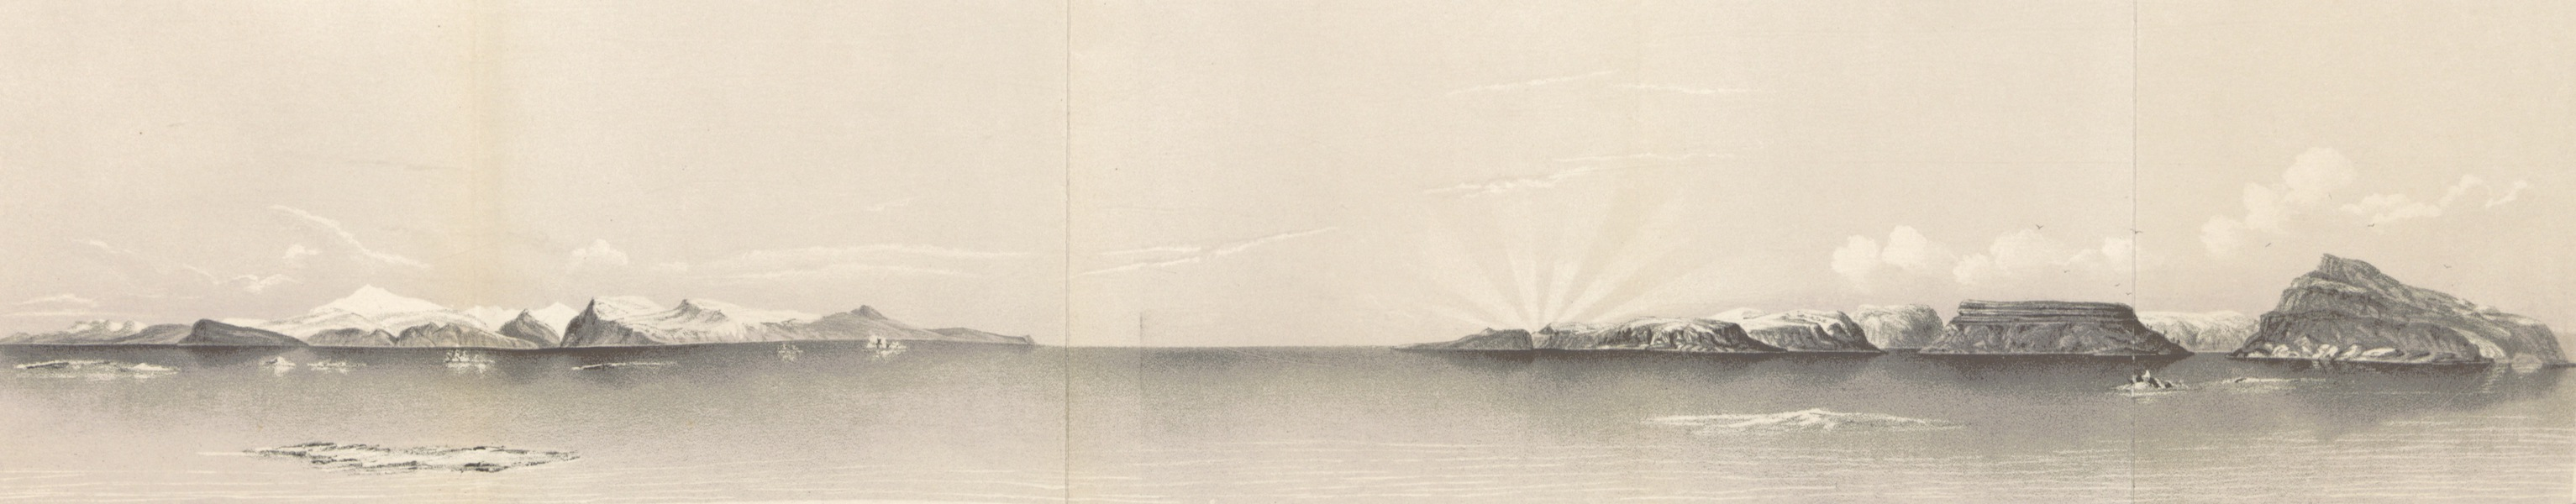 [Panorama of] Prince of Wales Mountains, Cape Albert, Cape Fred. VII, Crystal Palace Cliffs and Cape Alexander